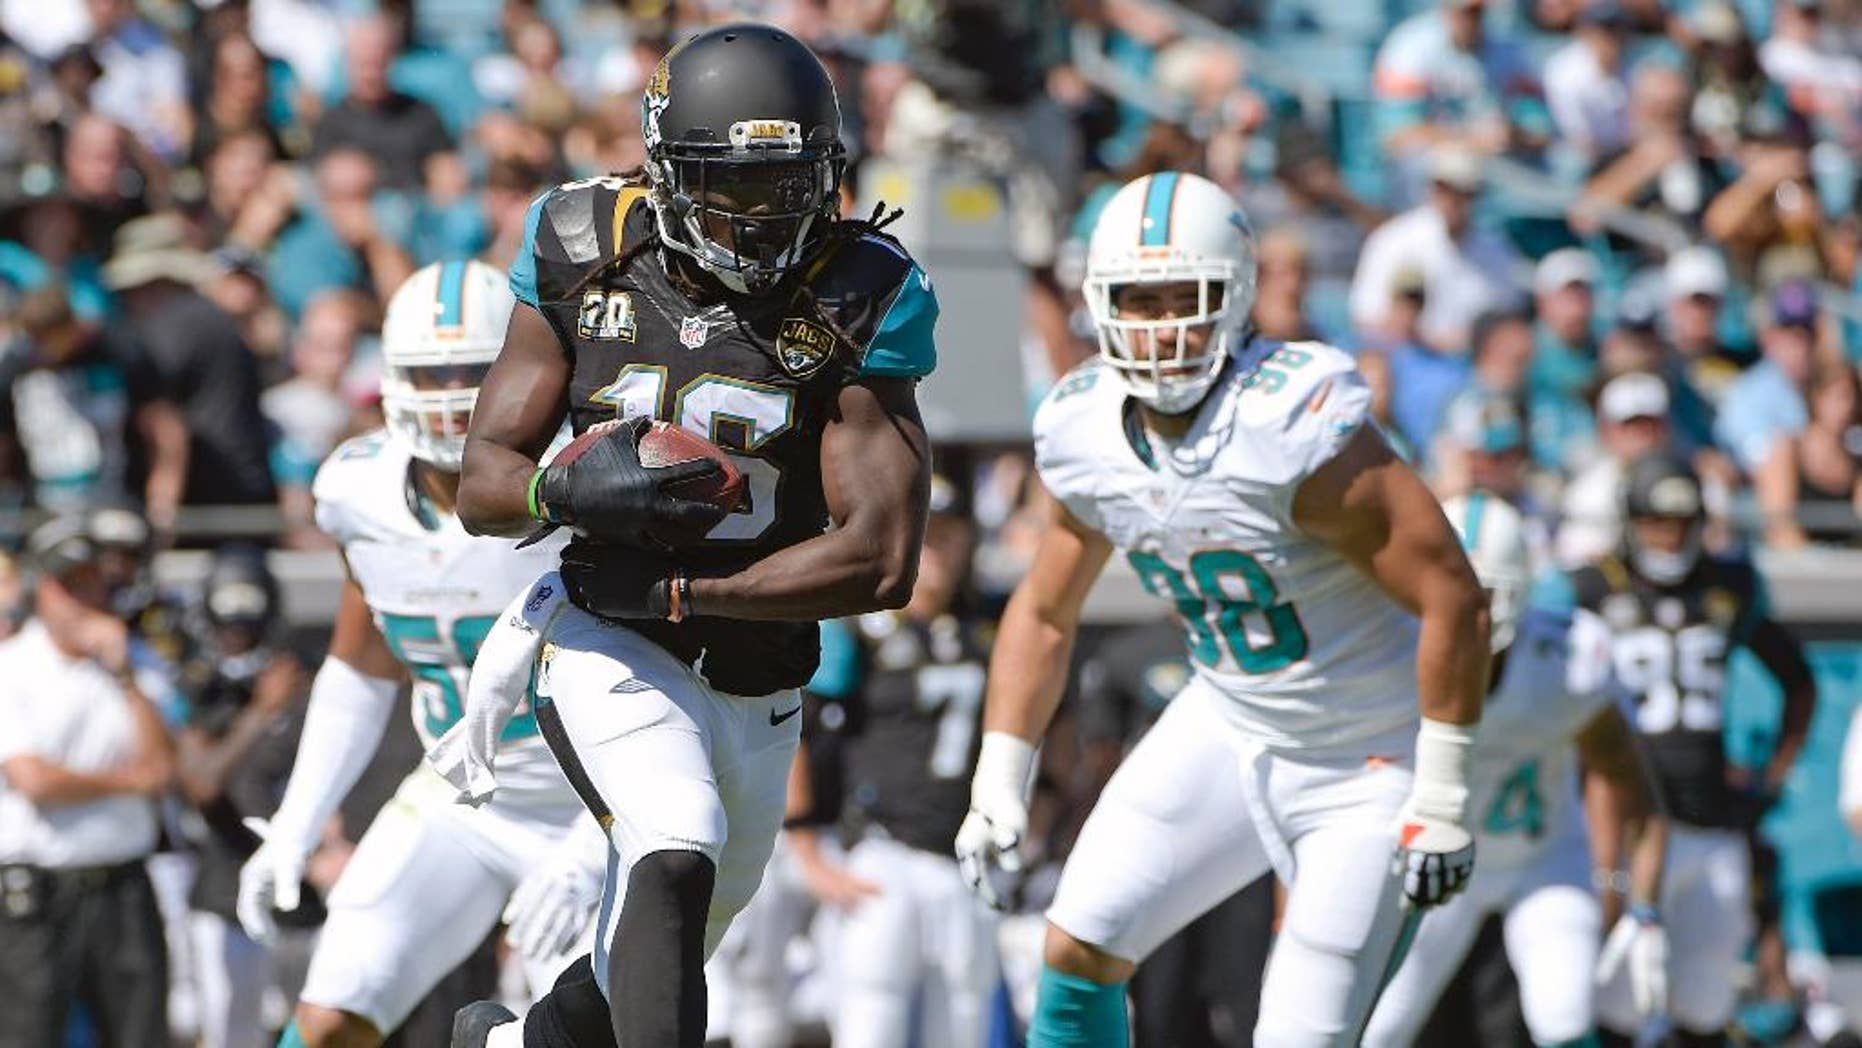 Jacksonville Jaguars running back Denard Robinson (16) takes off on a 41-yard run past Miami Dolphins defensive end Olivier Vernon, left, and defensive tackle Jared Odrick (98) during the first half of an NFL football game in Jacksonville, Fla., Sunday, Oct. 26, 2014. (AP Photo/Phelan M. Ebenhack)